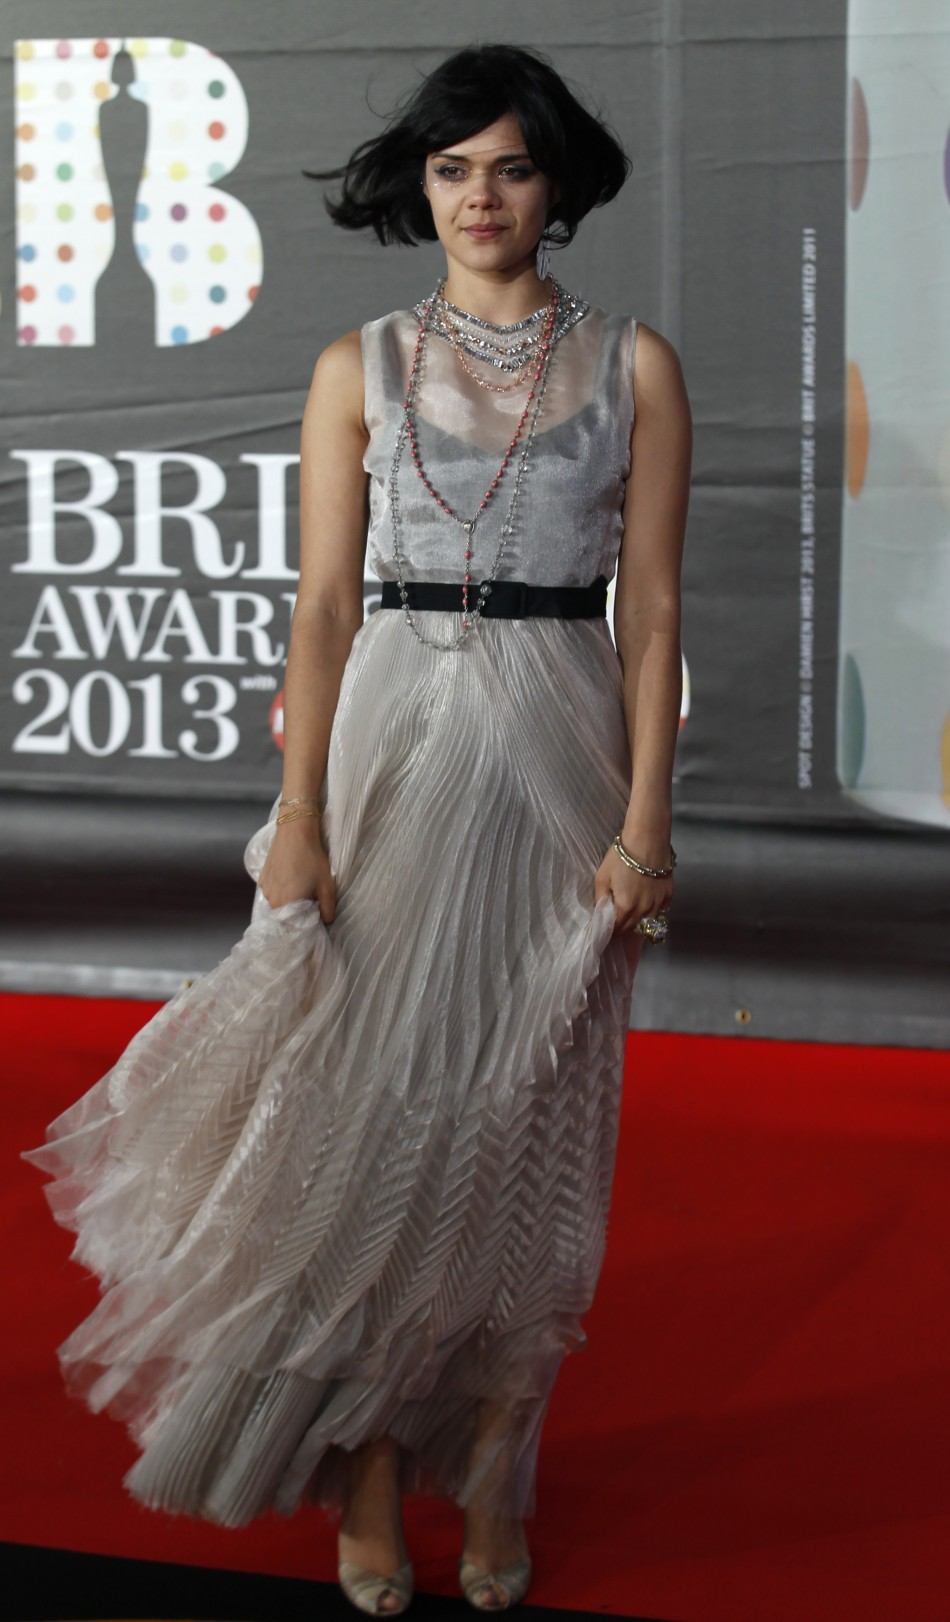 Bat For Lashes arrives for the BRIT Awards, celebrating British pop music, at the O2 Arena in London February 20, 2013.